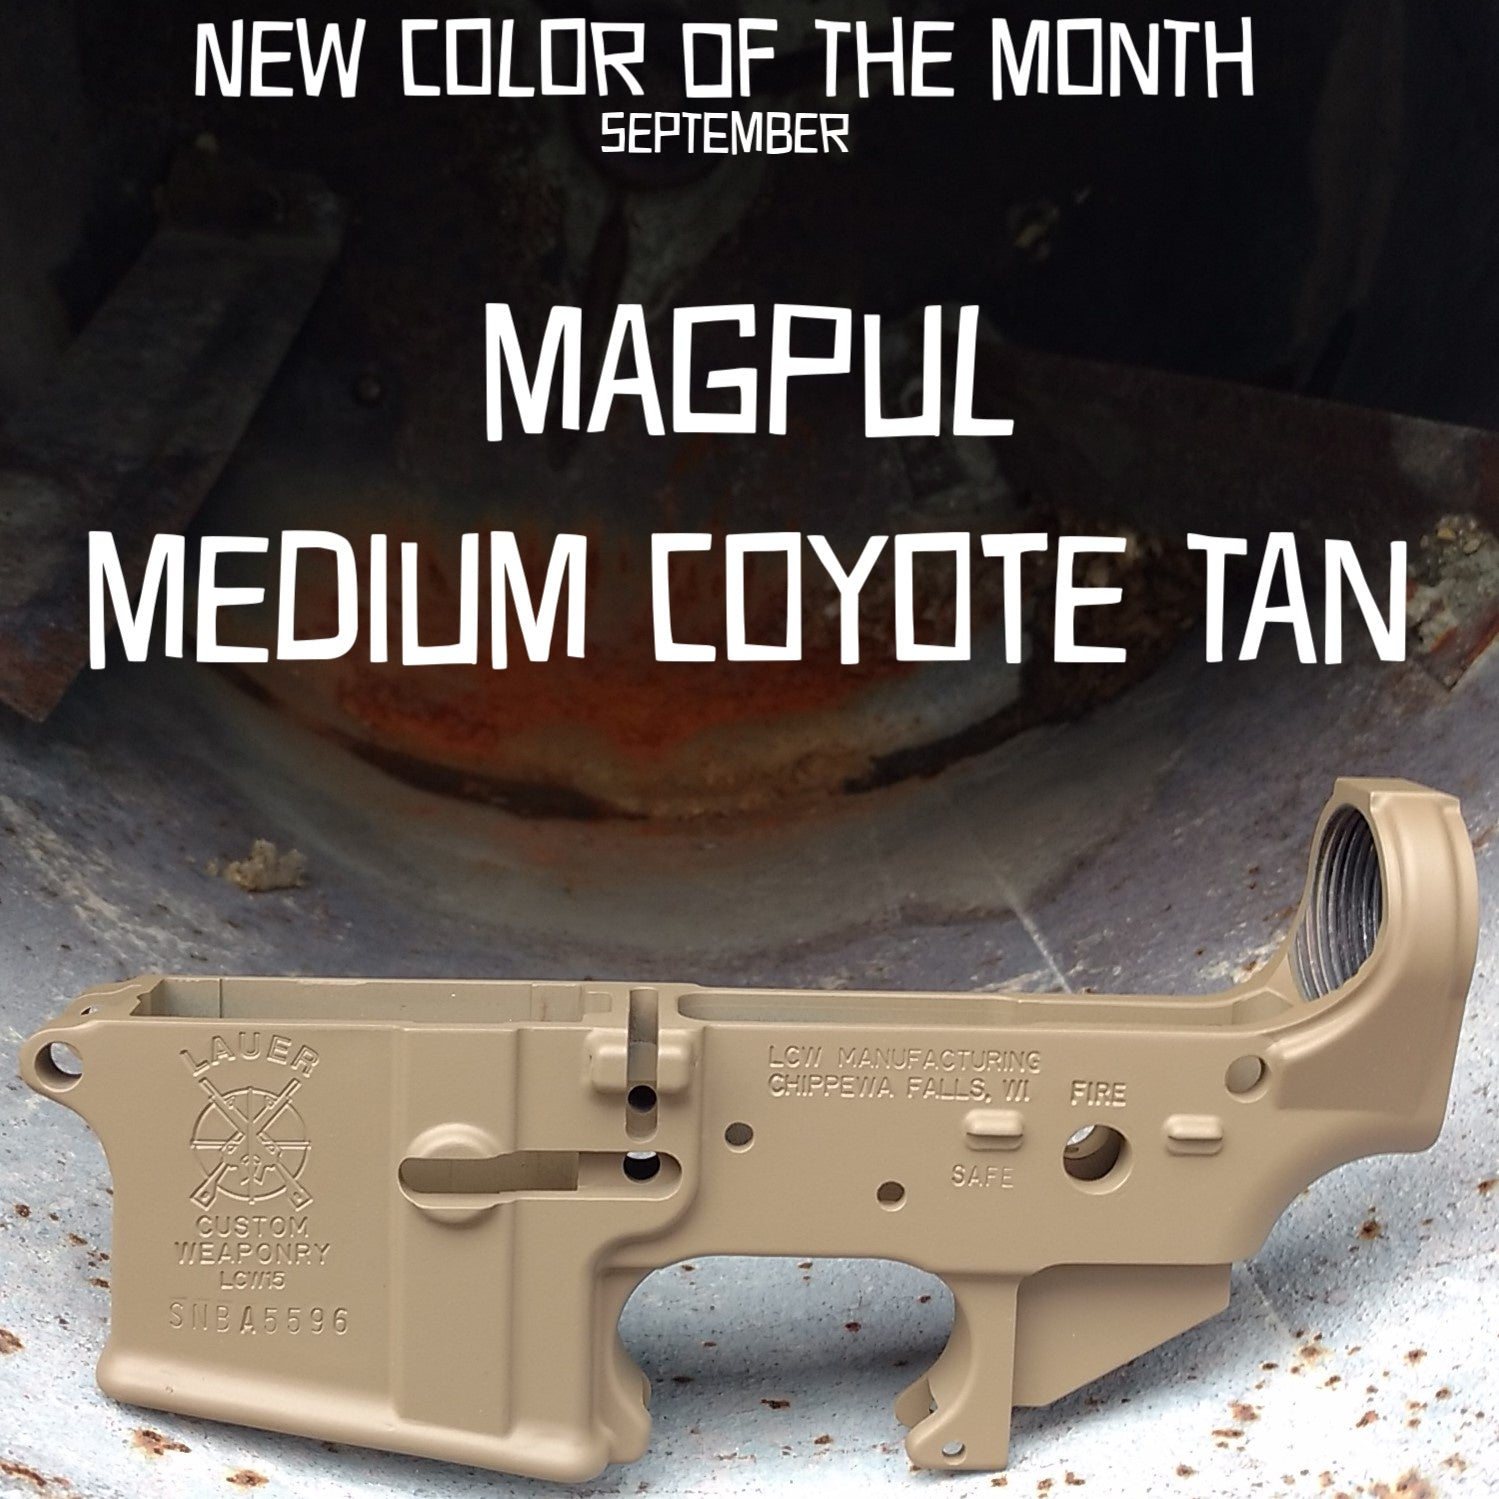 Magpul Medium Coyote Tan - SEPTEMBER New Color of the Month